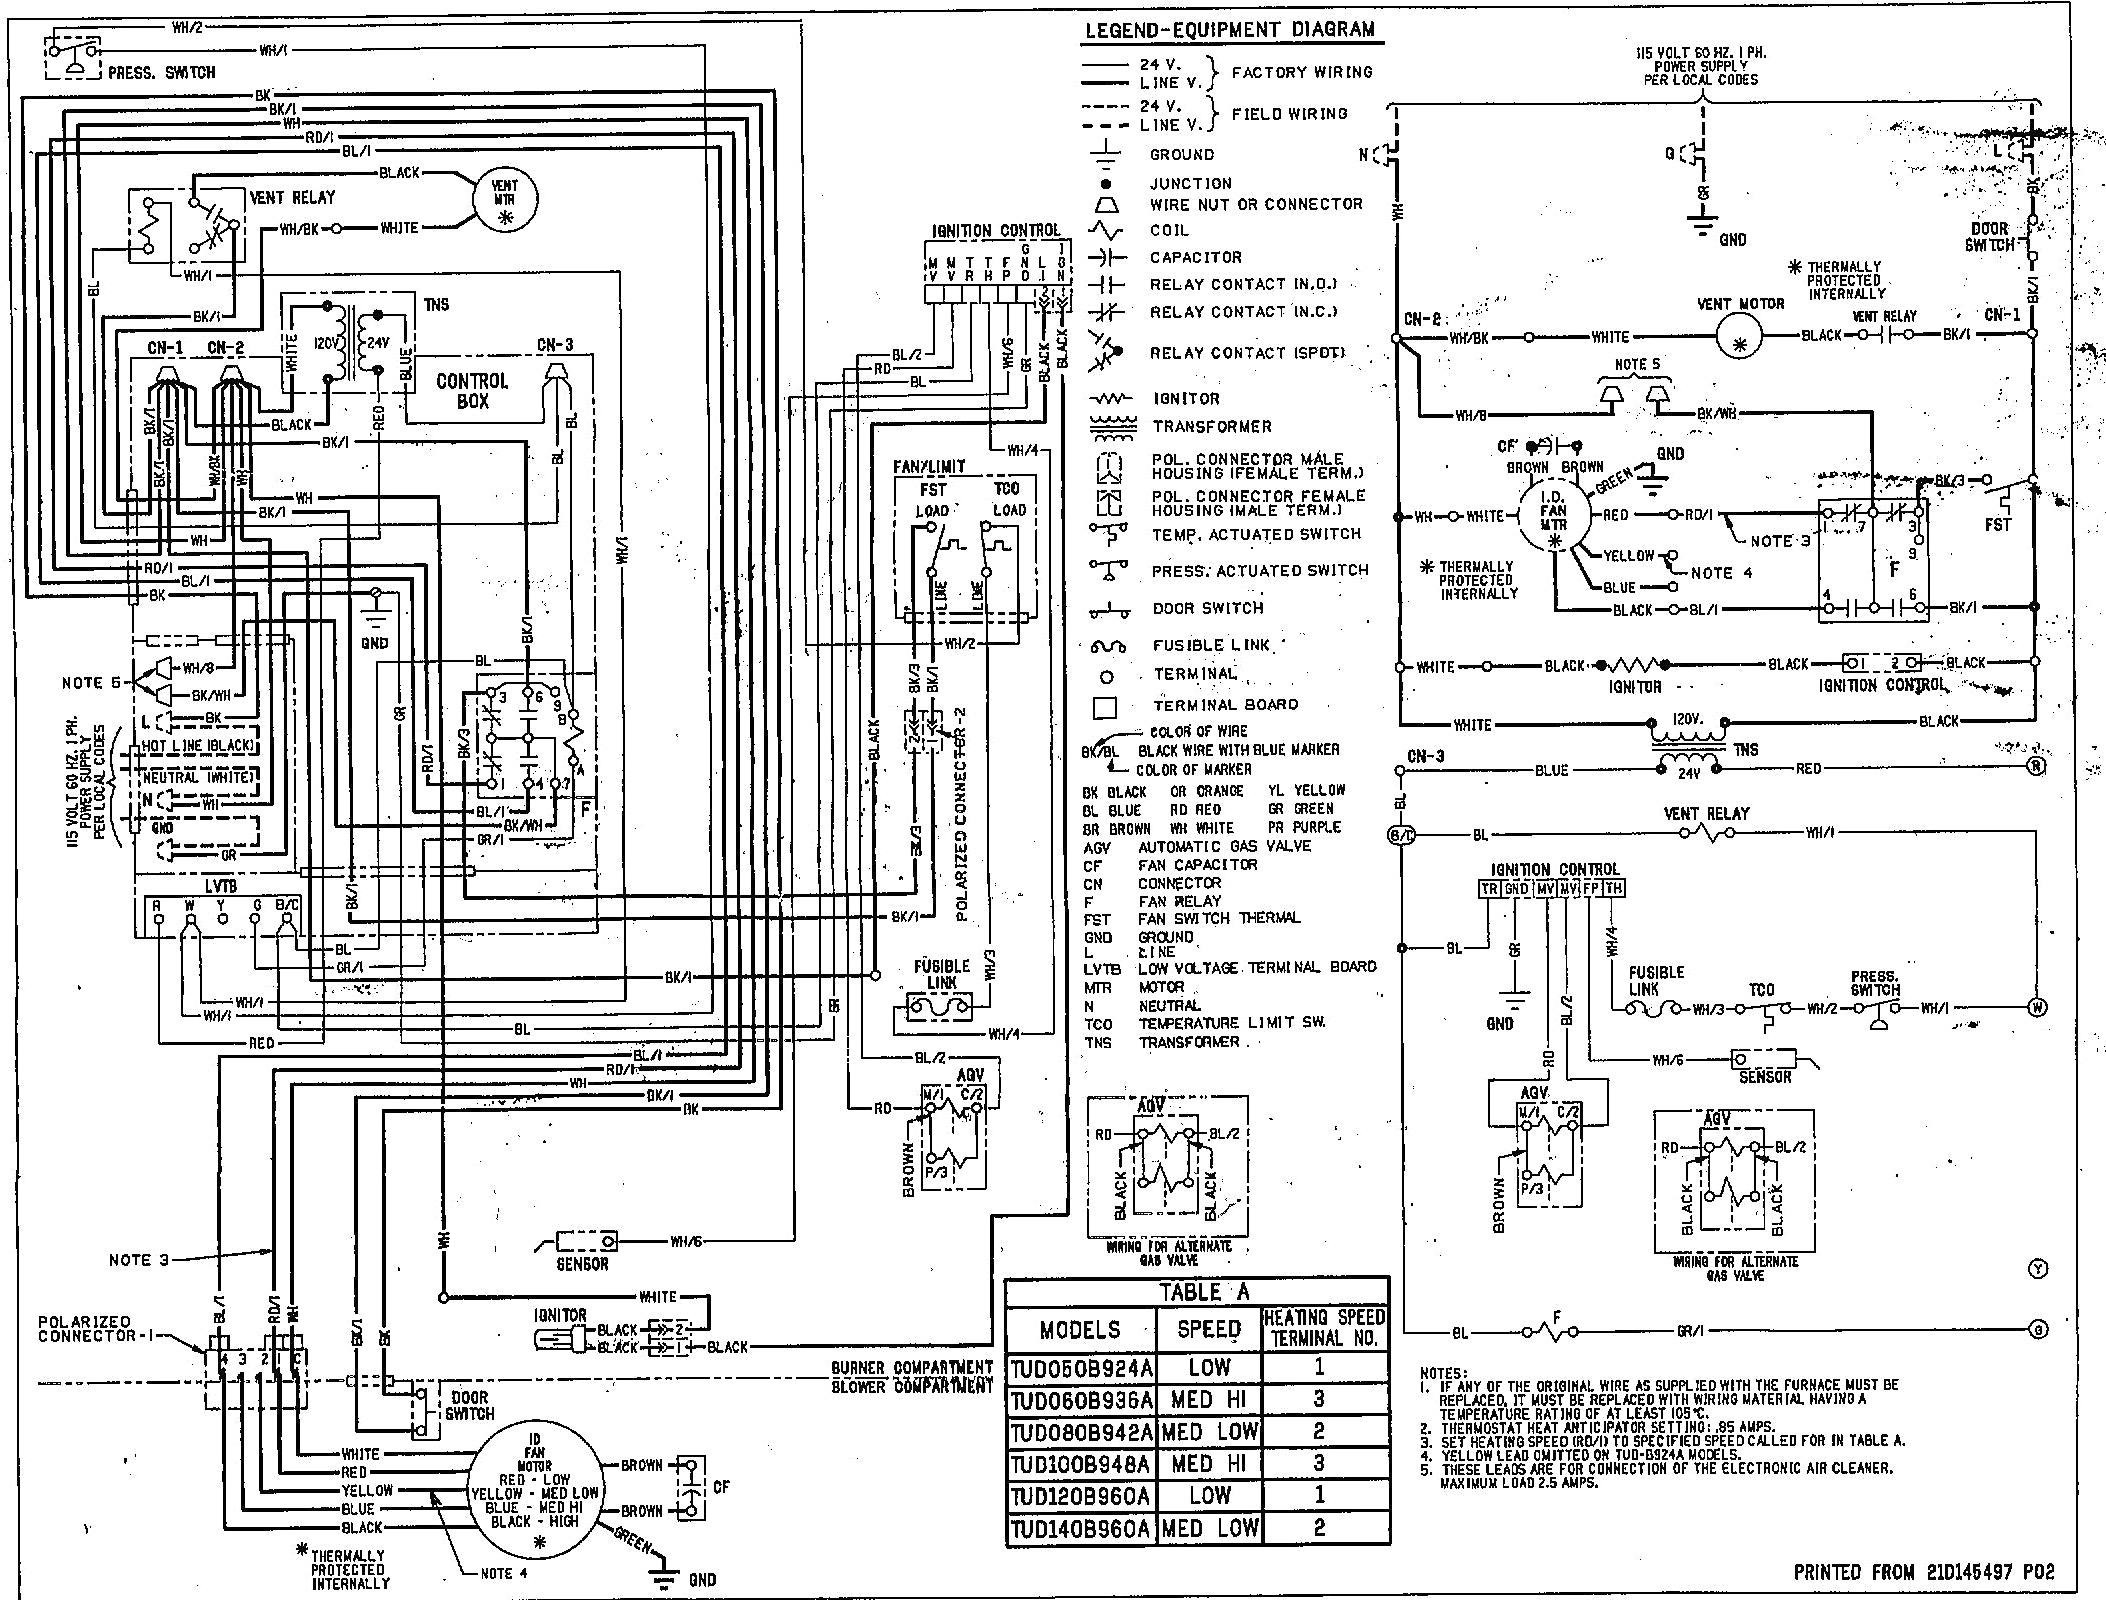 trane unit heater wiring diagram Collection-Rheem Hvac Wiring Diagram Best Trane Furnace Wiring Diagram Best Rheem thermostat Wiring Diagram 19-c